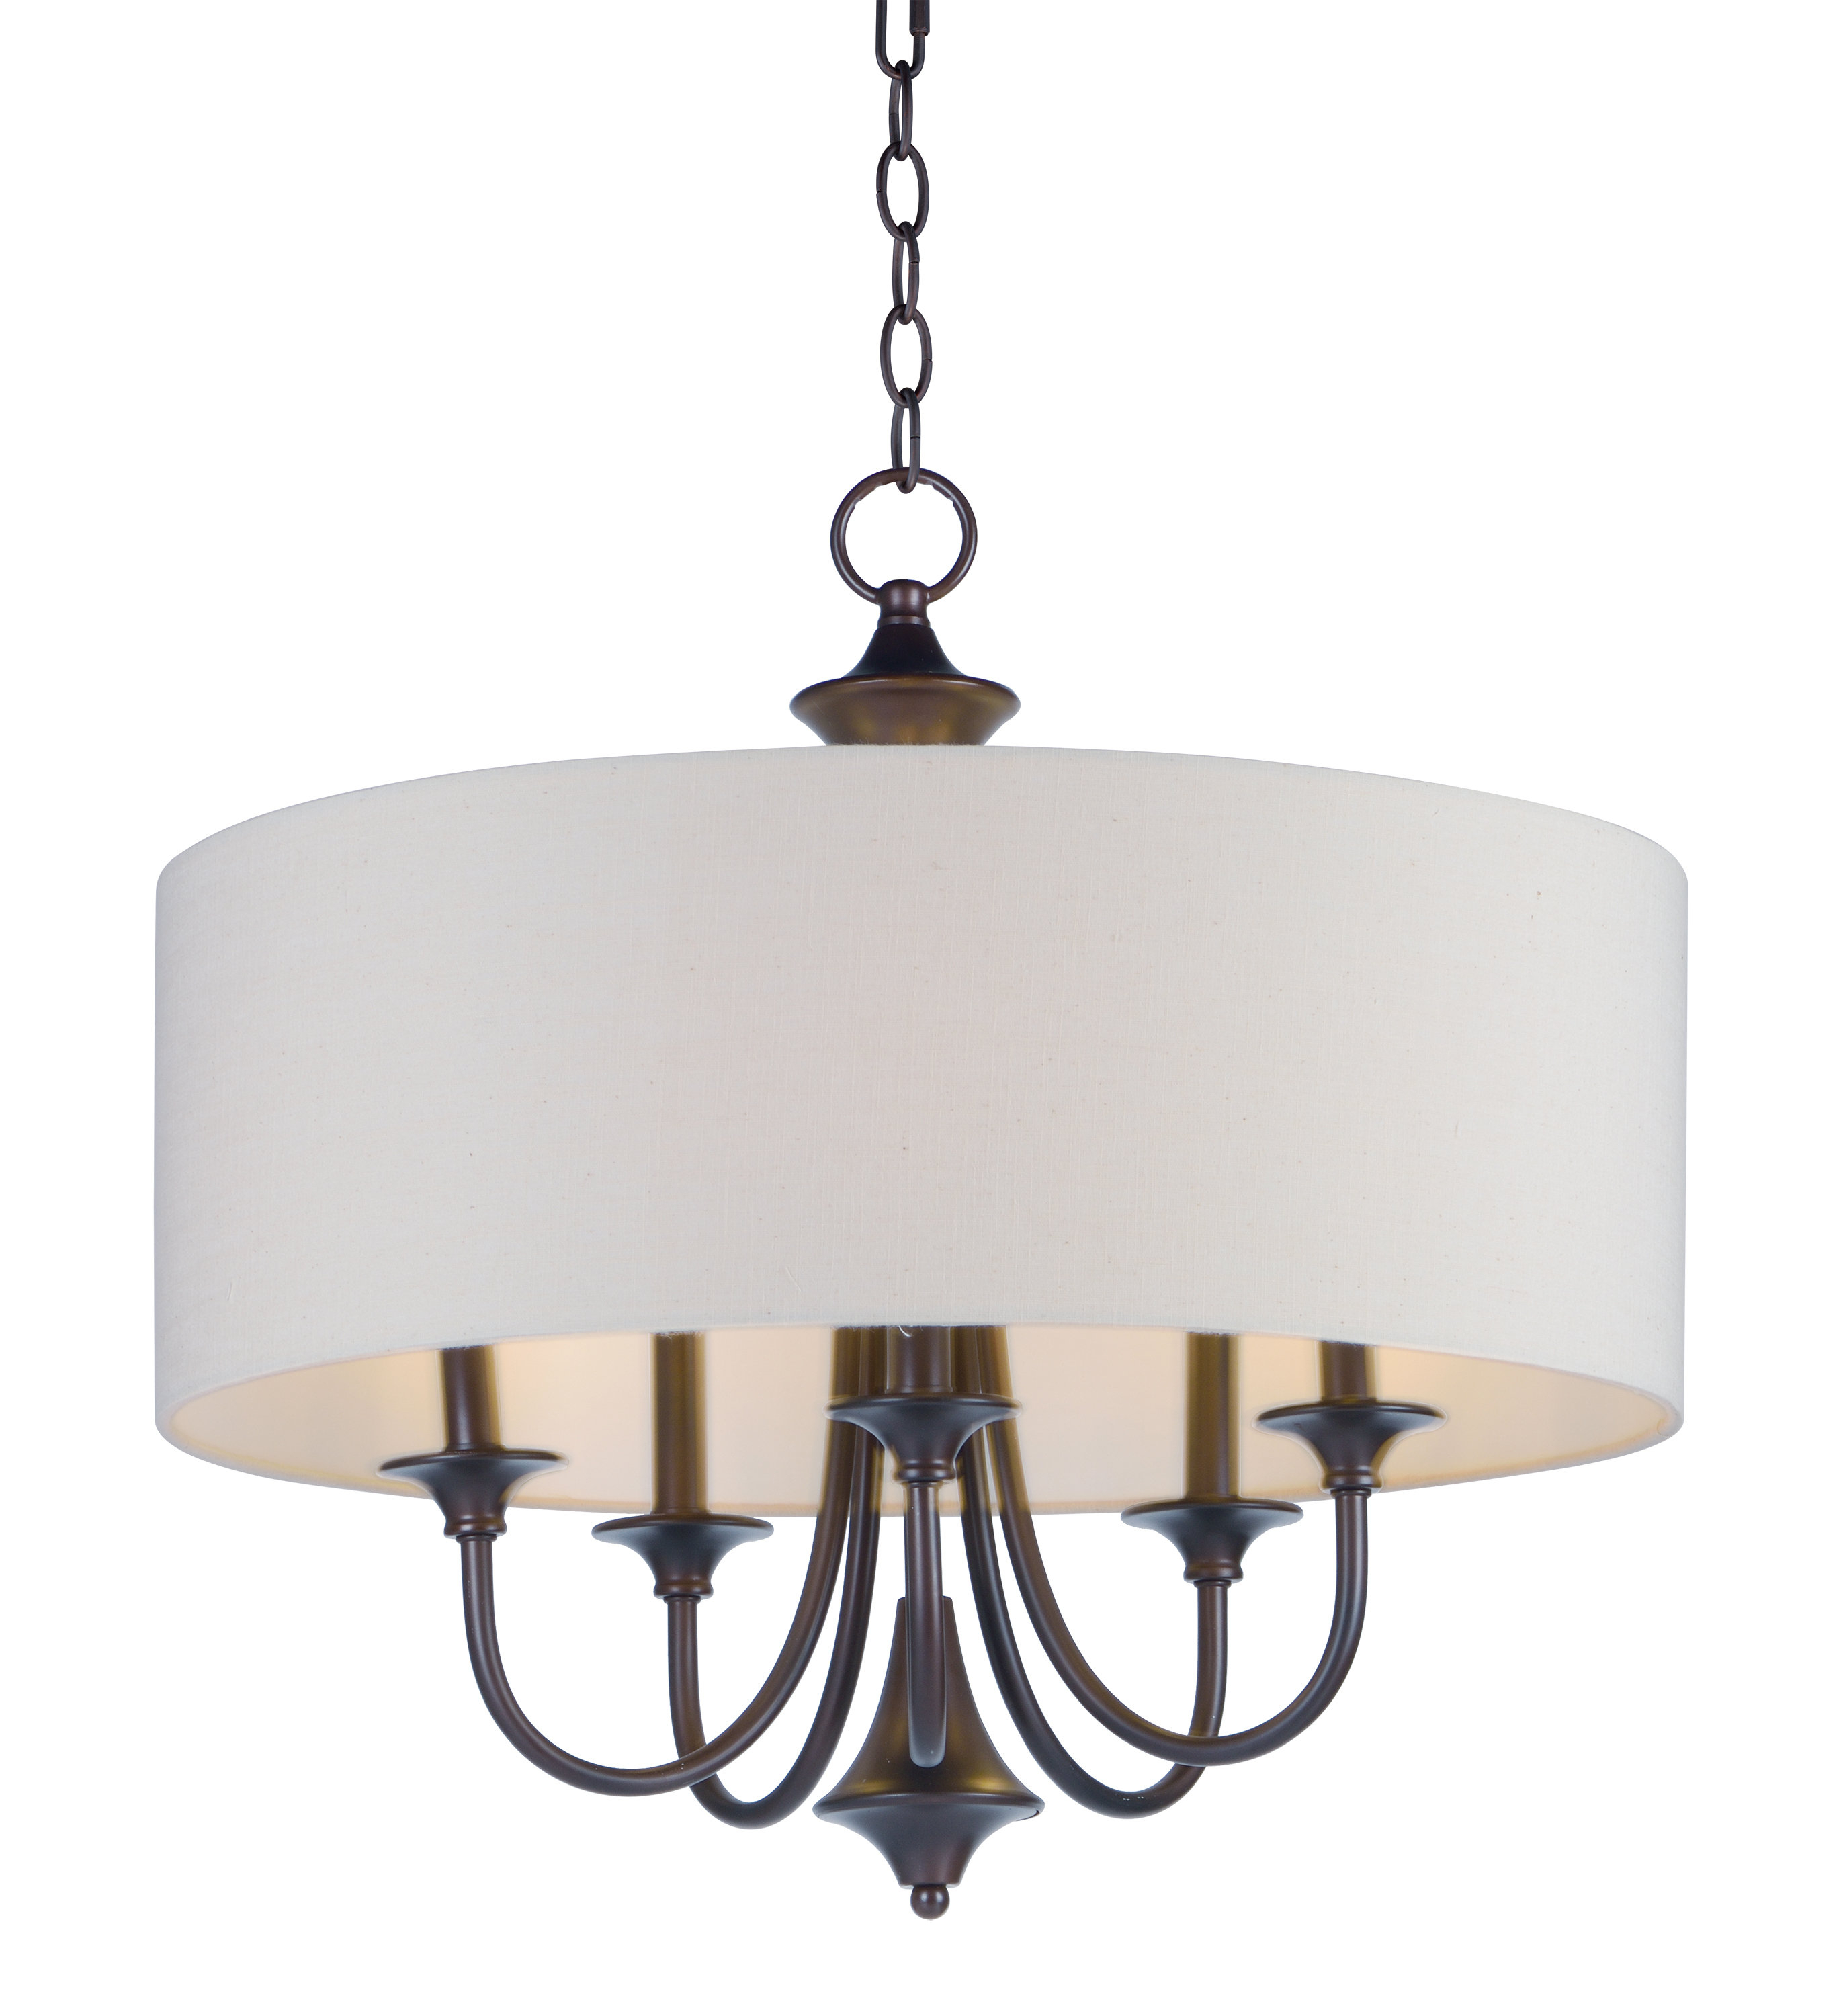 Darby Home Co Becher 5 Light Drum Chandelier With Abel 5 Light Drum Chandeliers (Gallery 6 of 30)